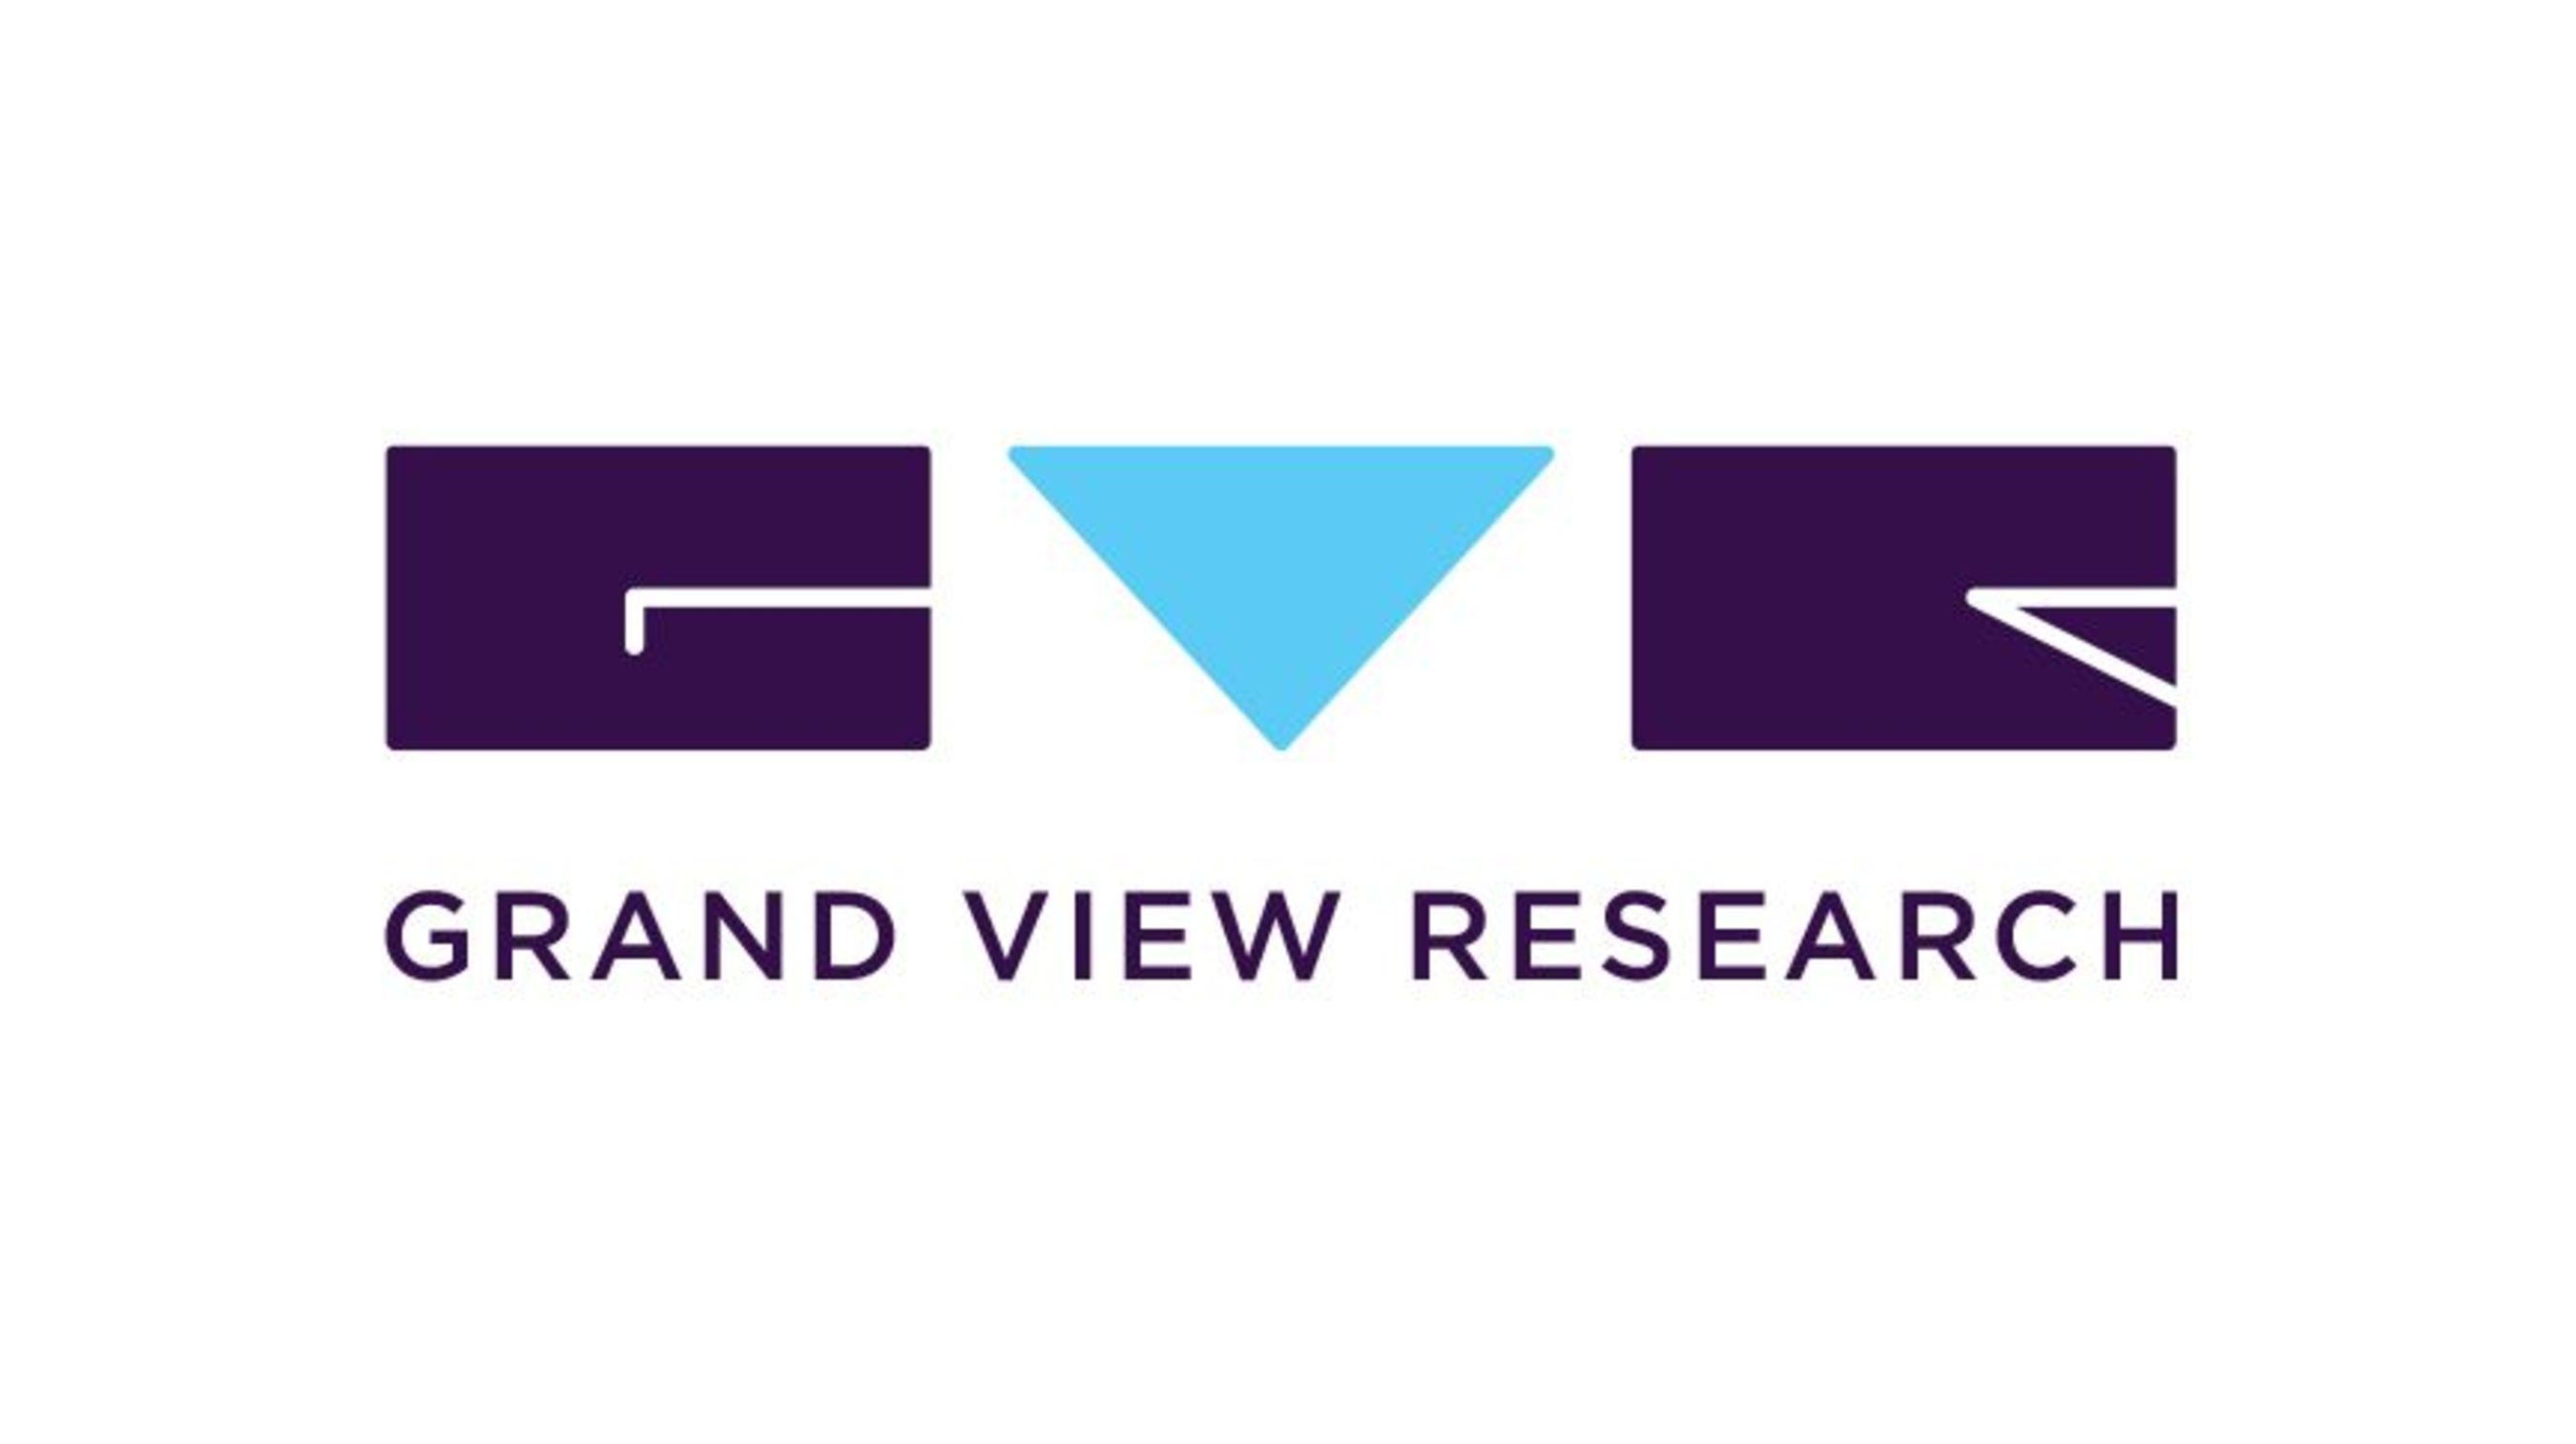 Augmented Reality Market Worth $100.24 Billion By 2024: Grand View Research, Inc.